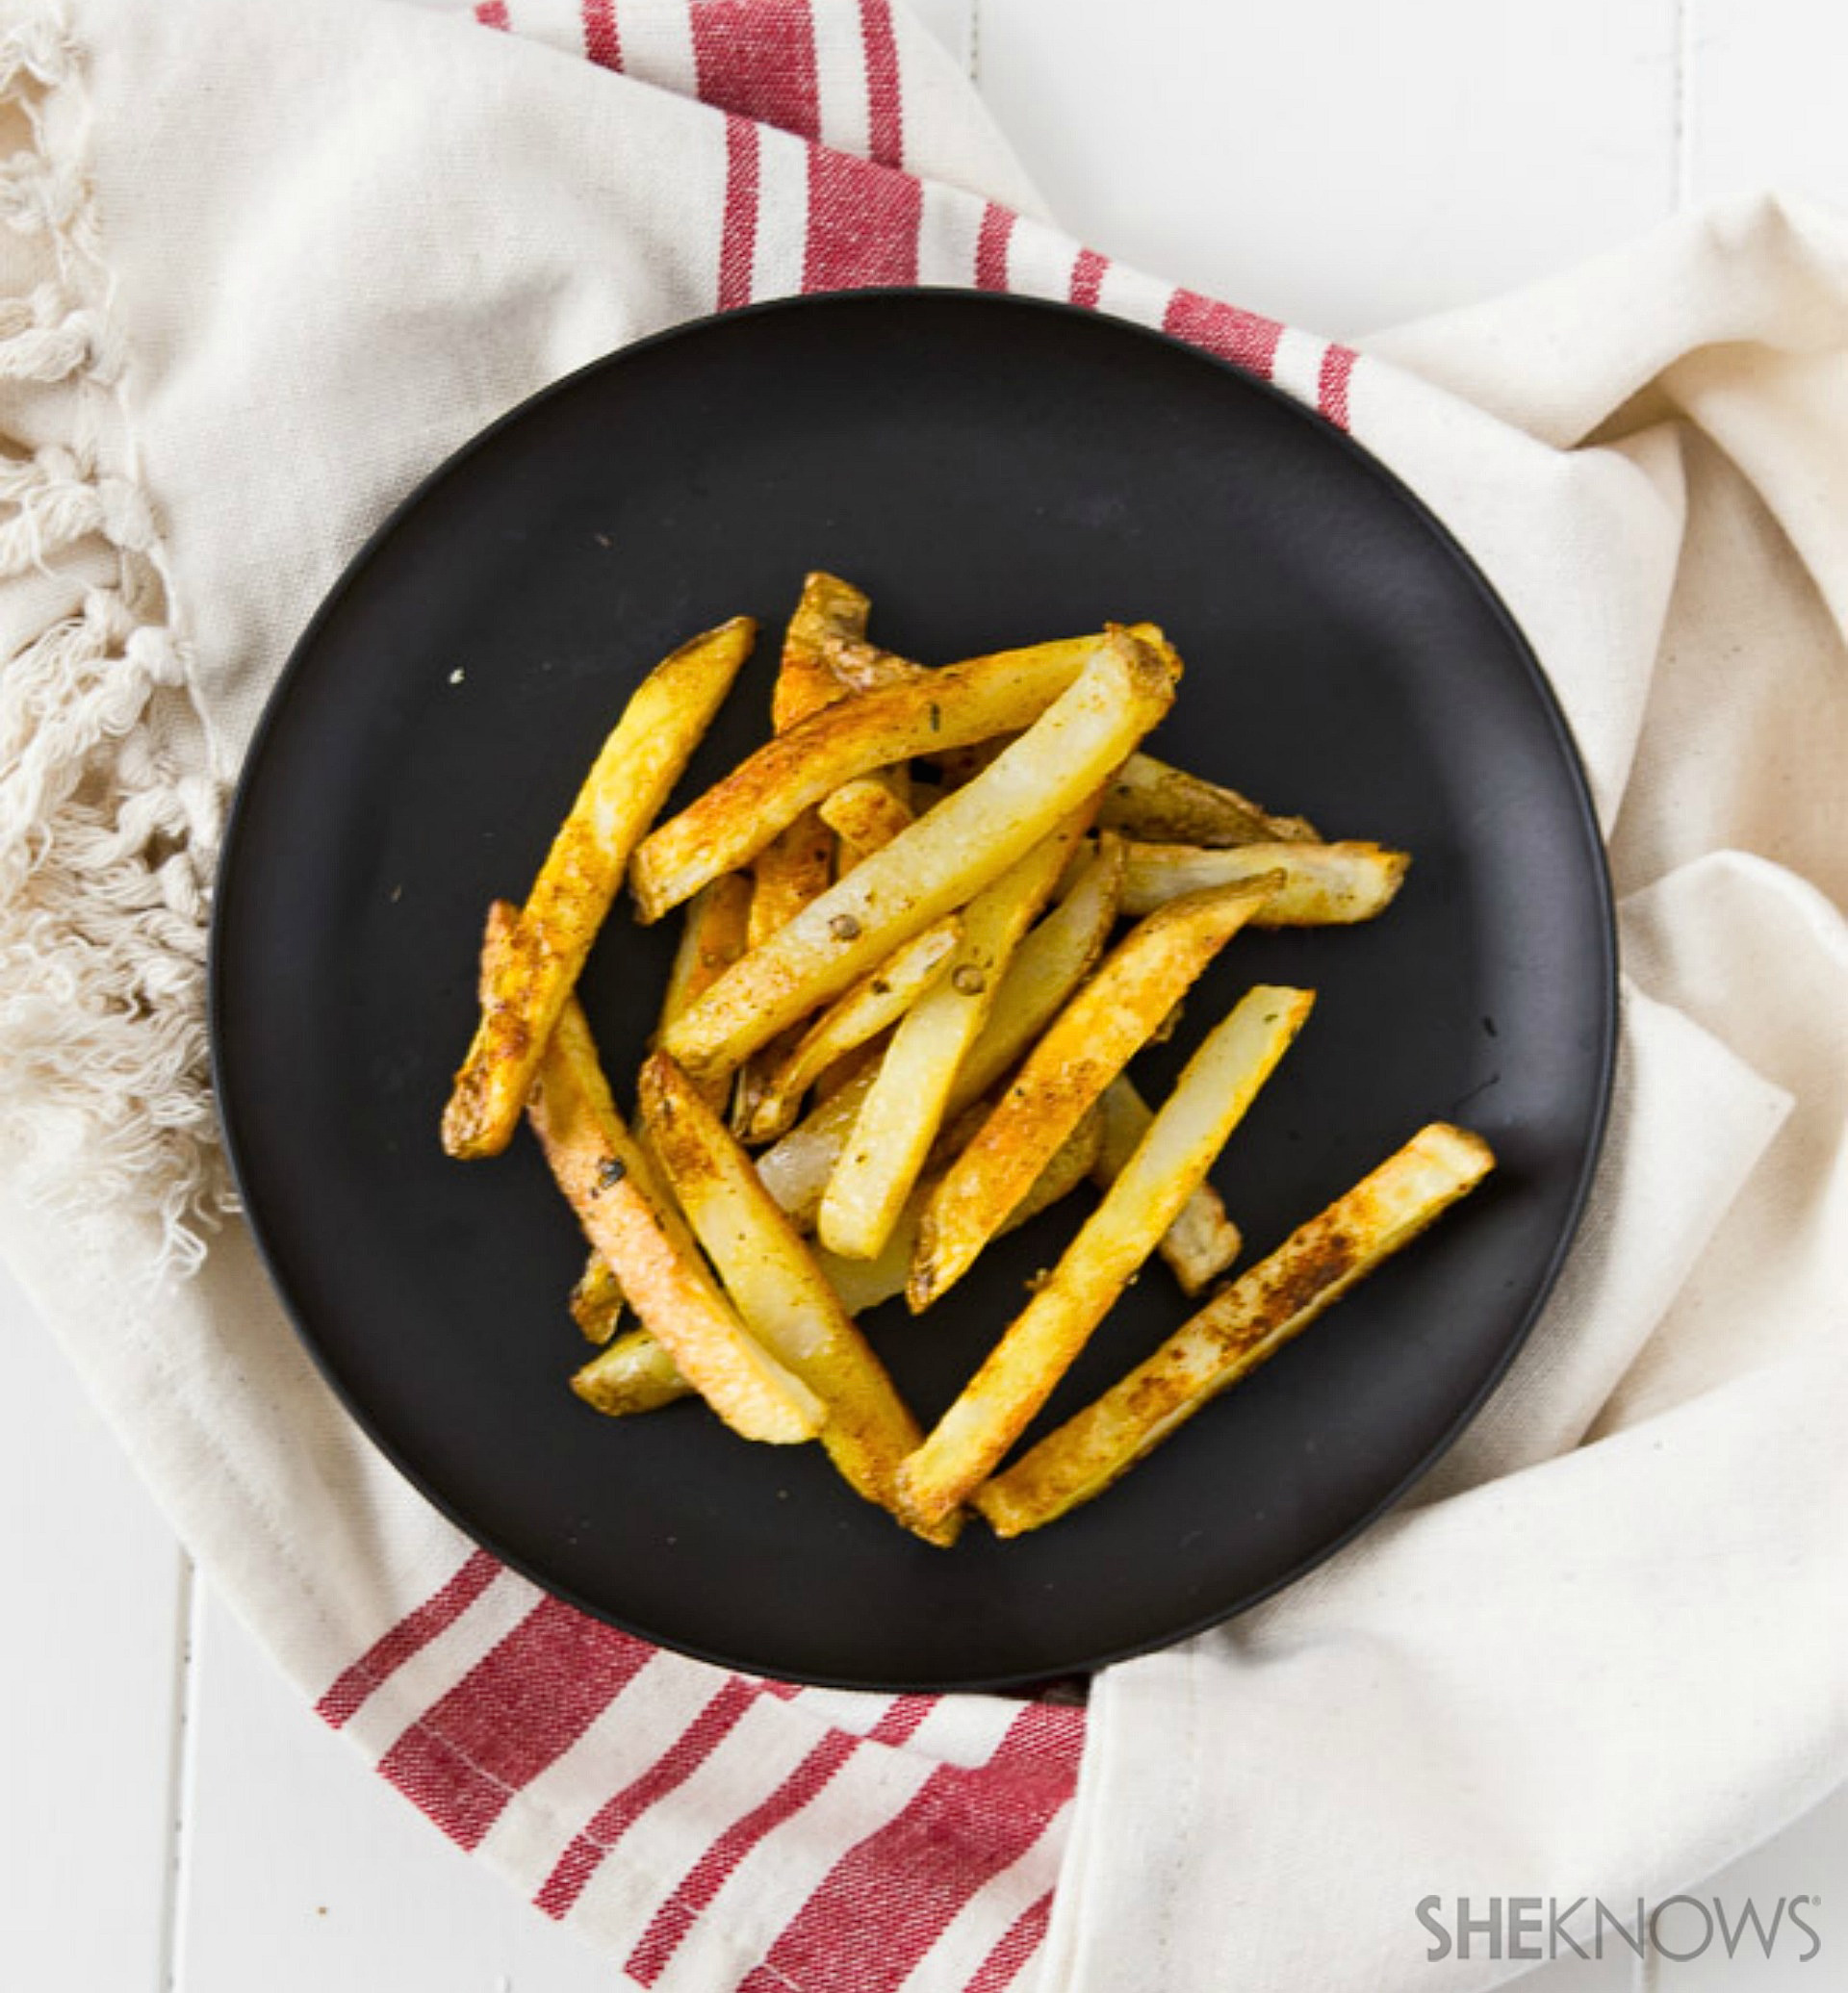 ... , Indian and Mexican spices add a dash of flavor to french fries